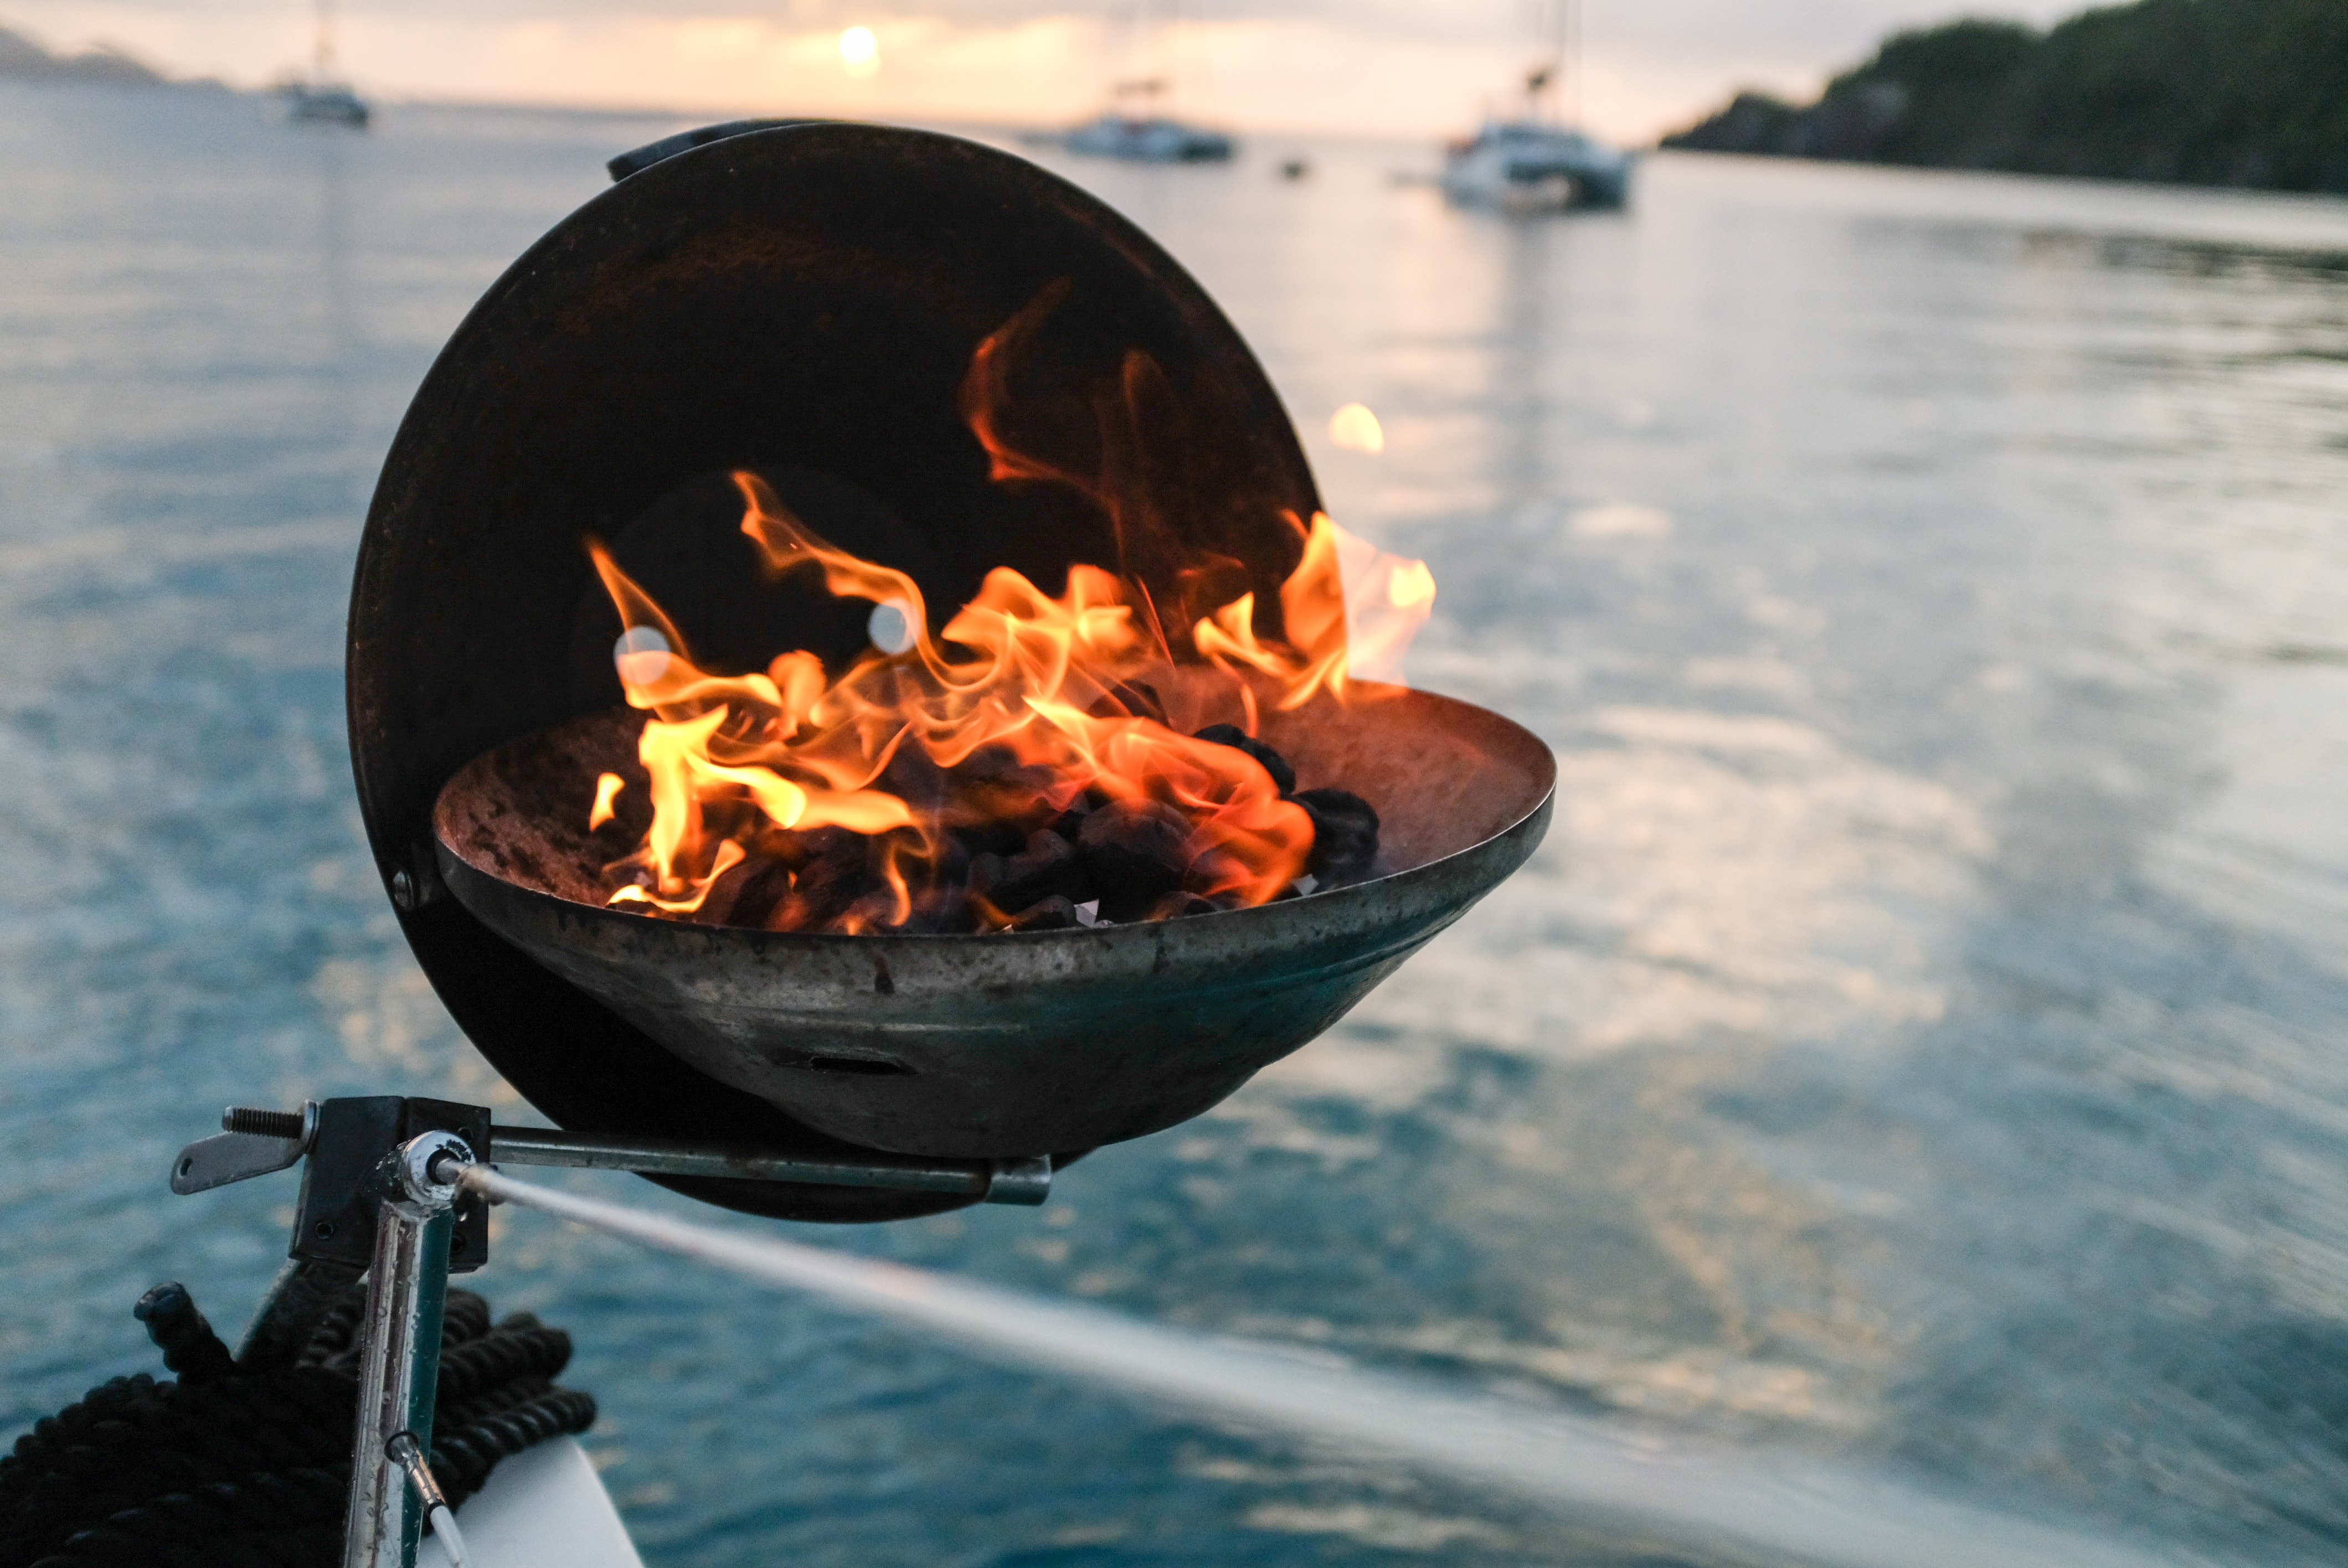 A grill attached to the side of a boat with other ships floating in the distant dusk